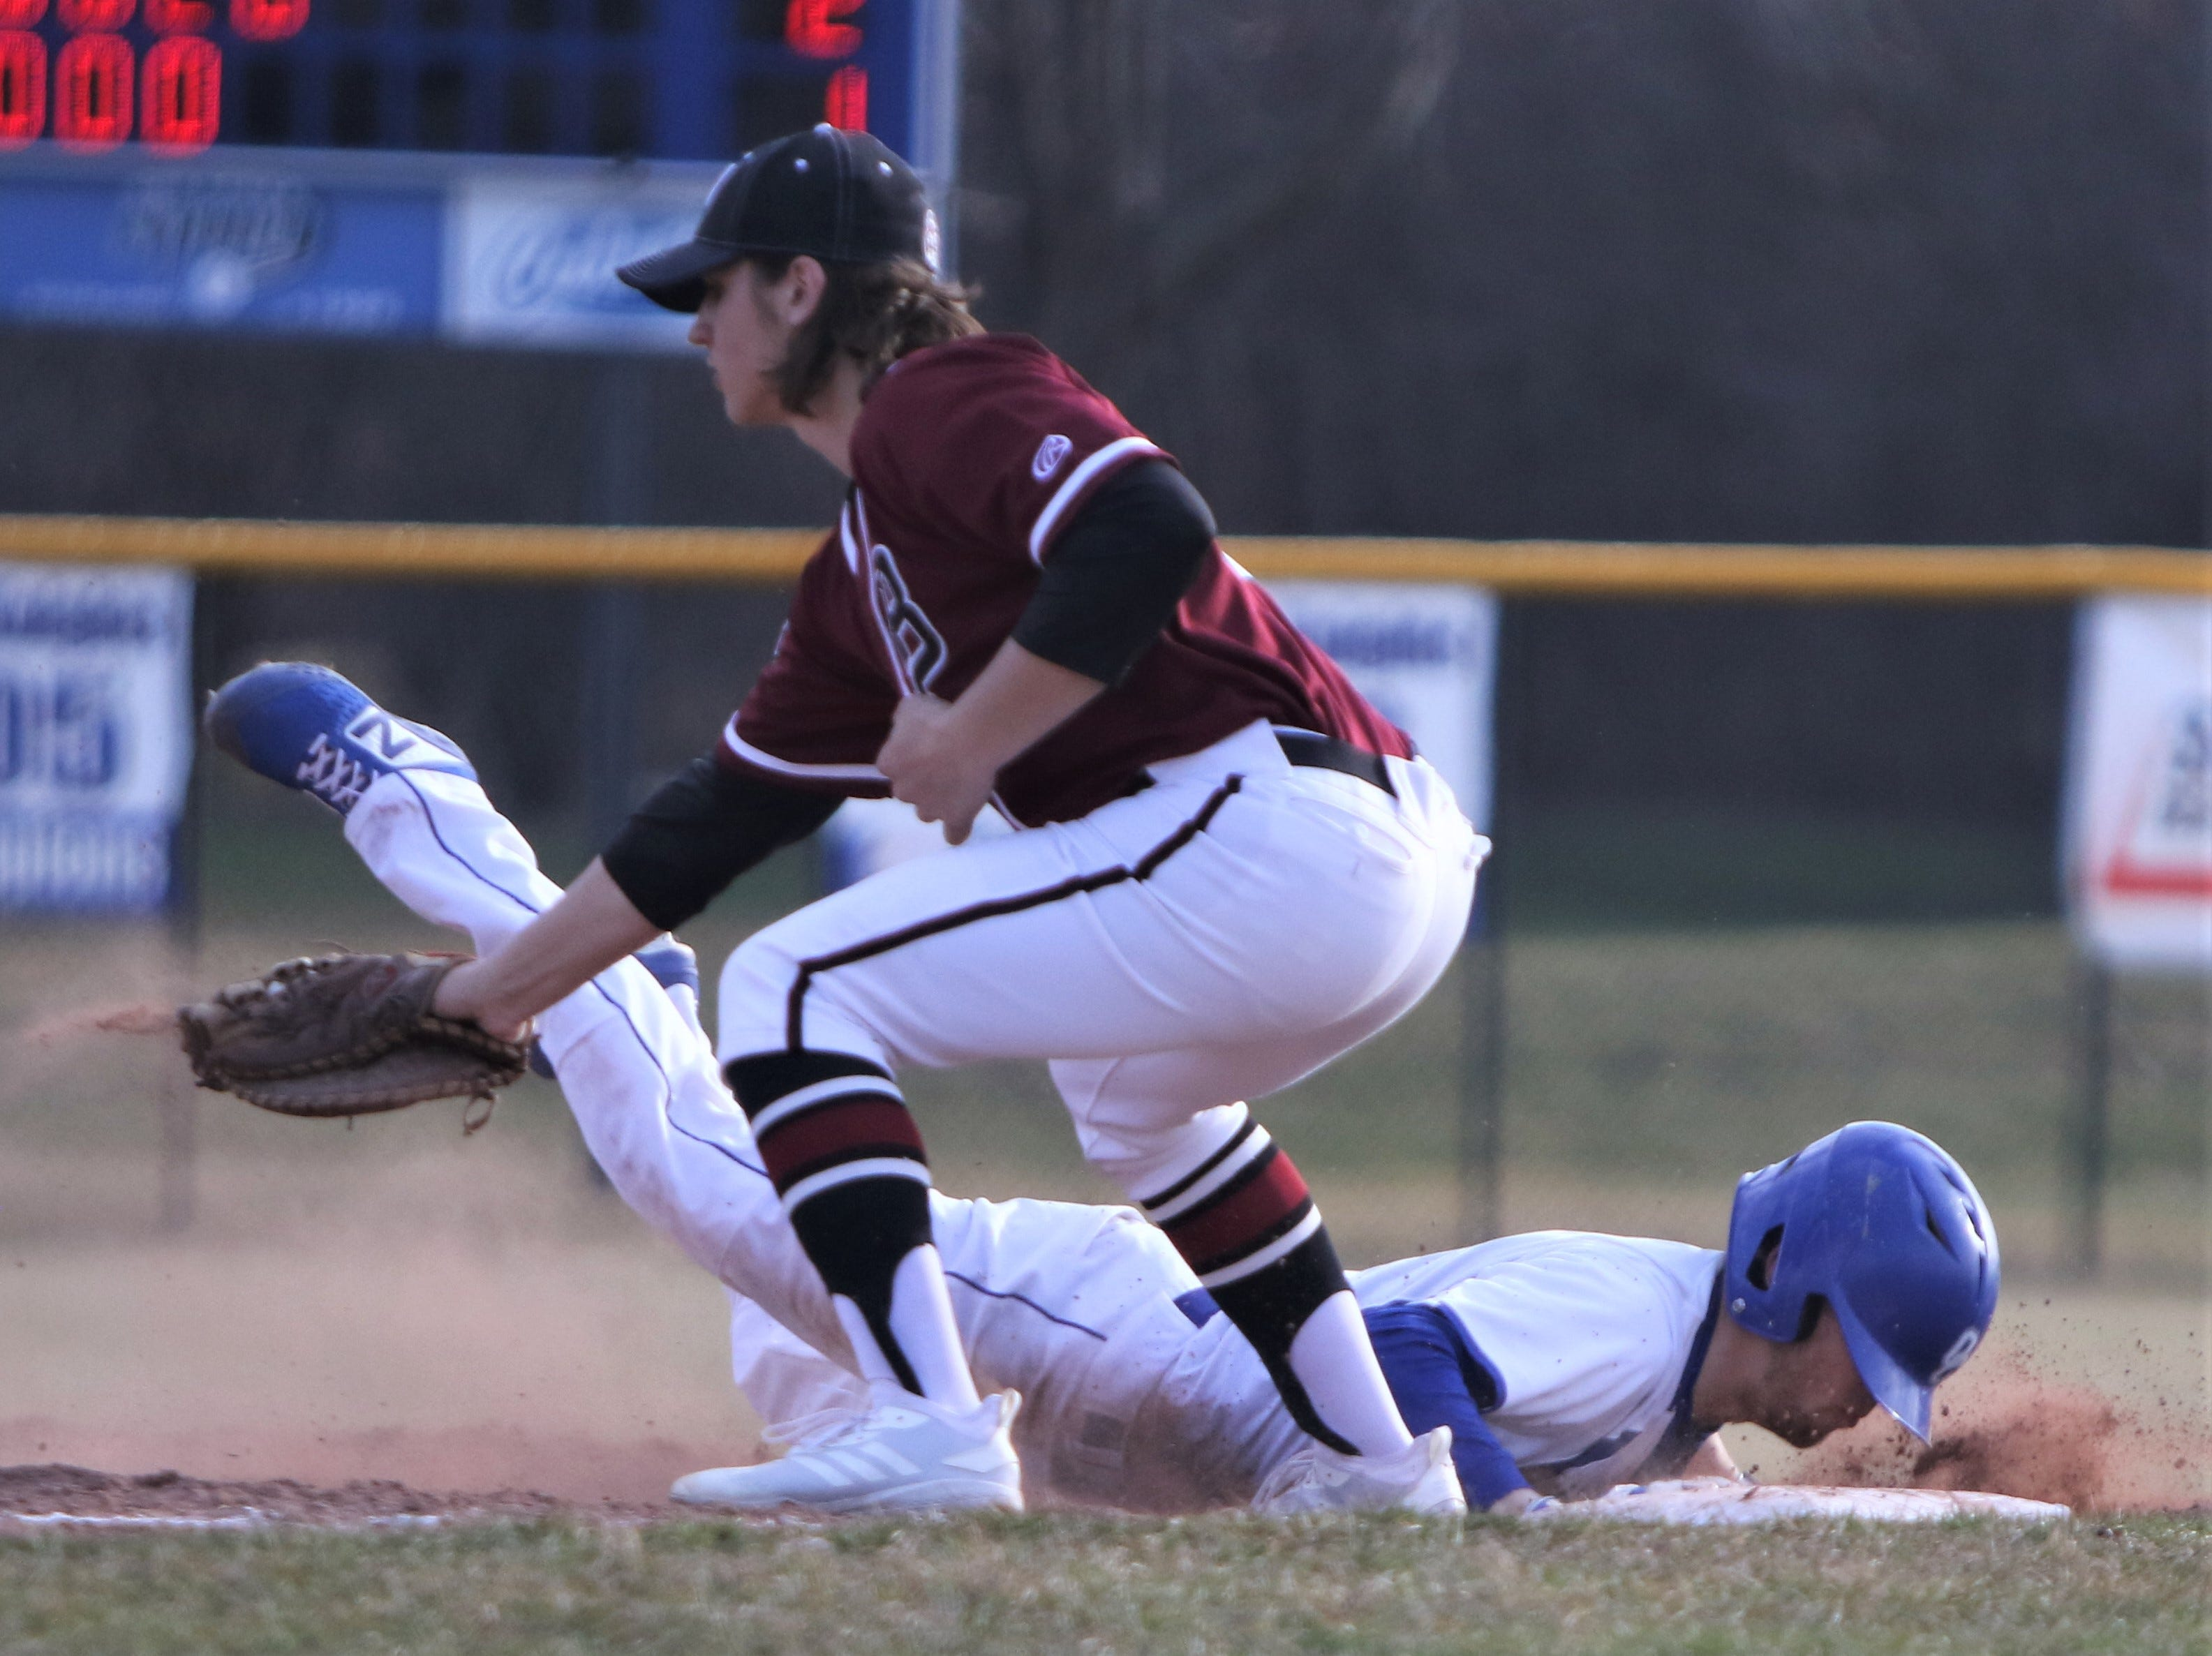 Oak Creek junior Aaron Smith dives back safely into first base on a pickoff attempt against Kenosha Bradford on April 9, 2019.